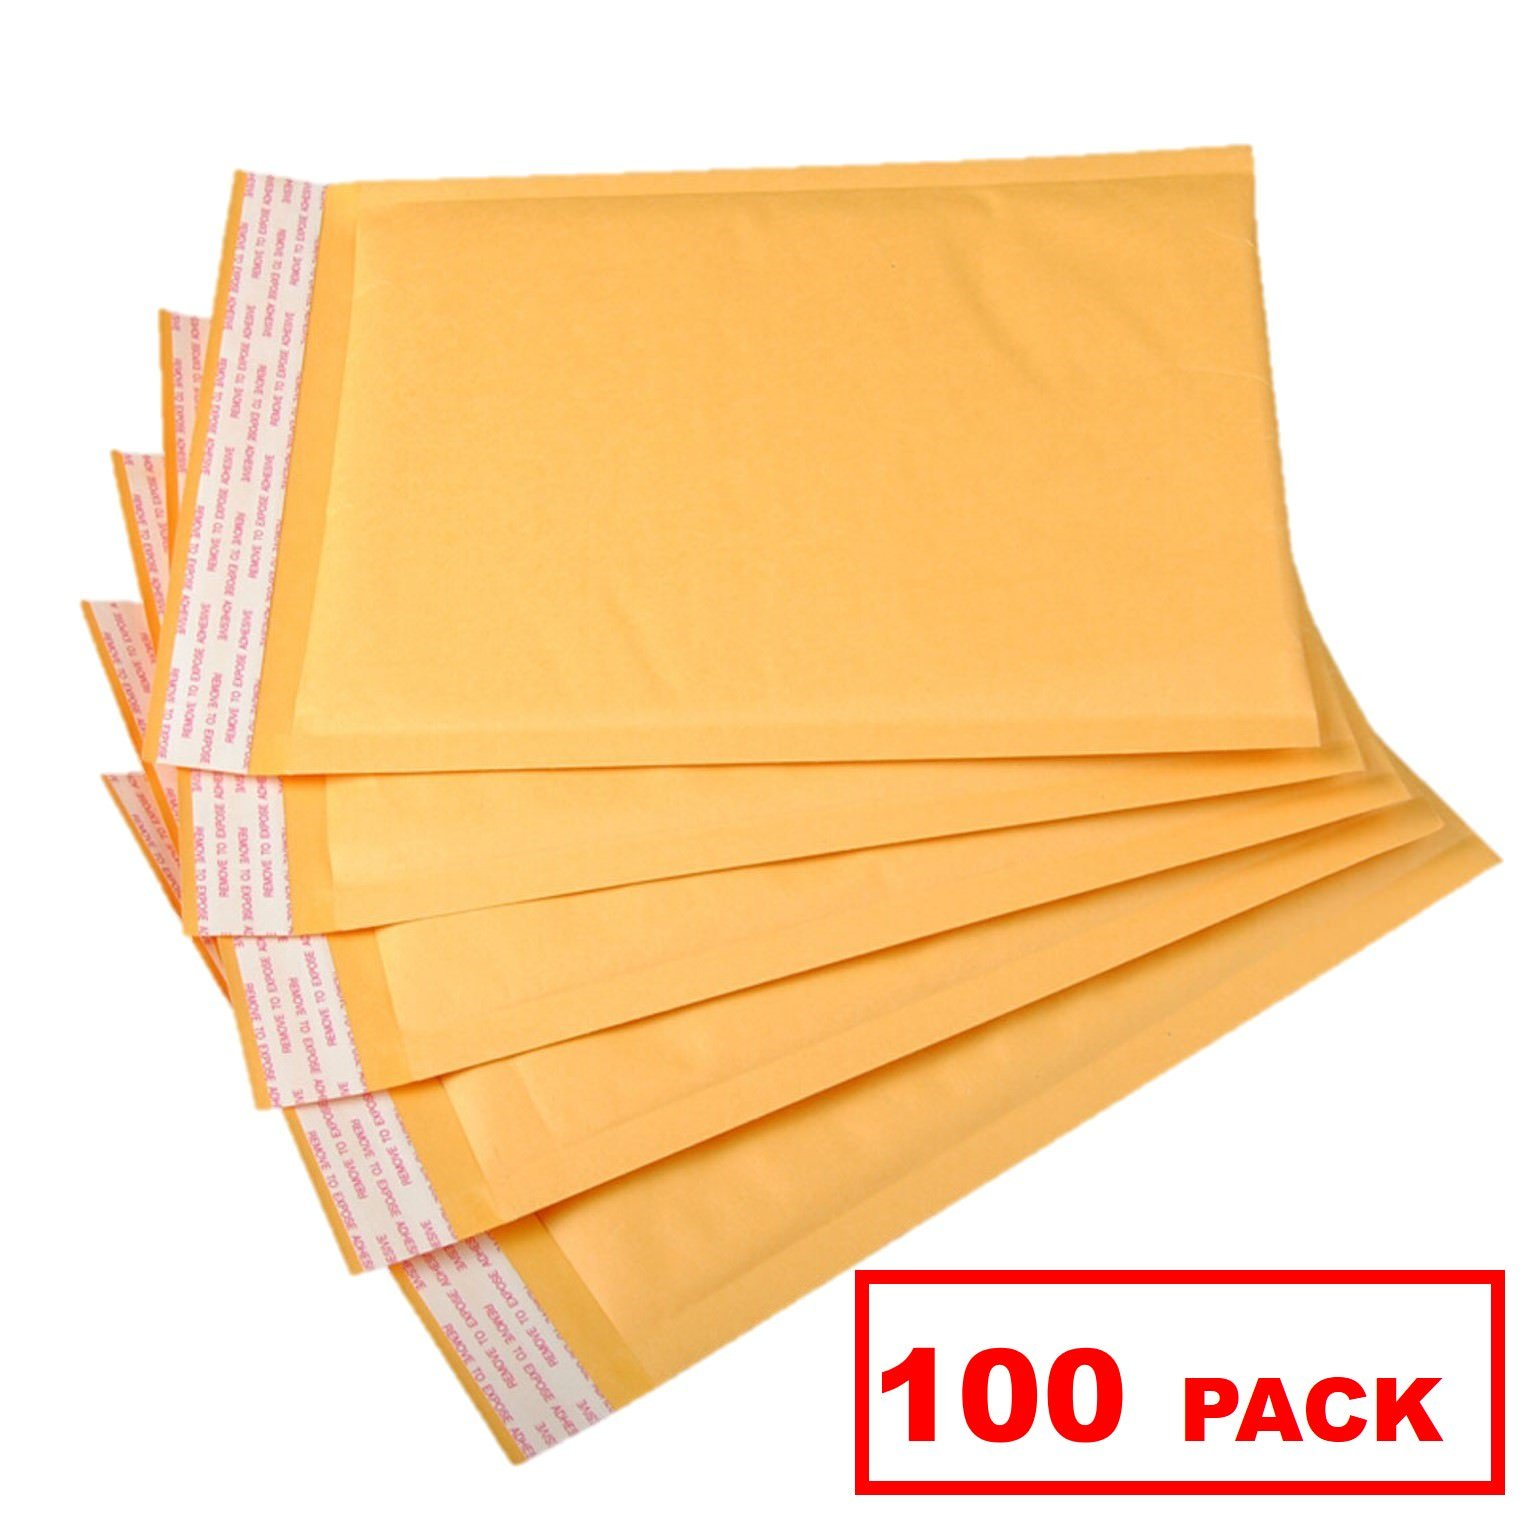 OfficeKit Kraft Bubble Mailers #5 10.5X16 inches Shipping Padded Envelopes Self Seal Cushioned Mailing Envelope Bags 100 Pack